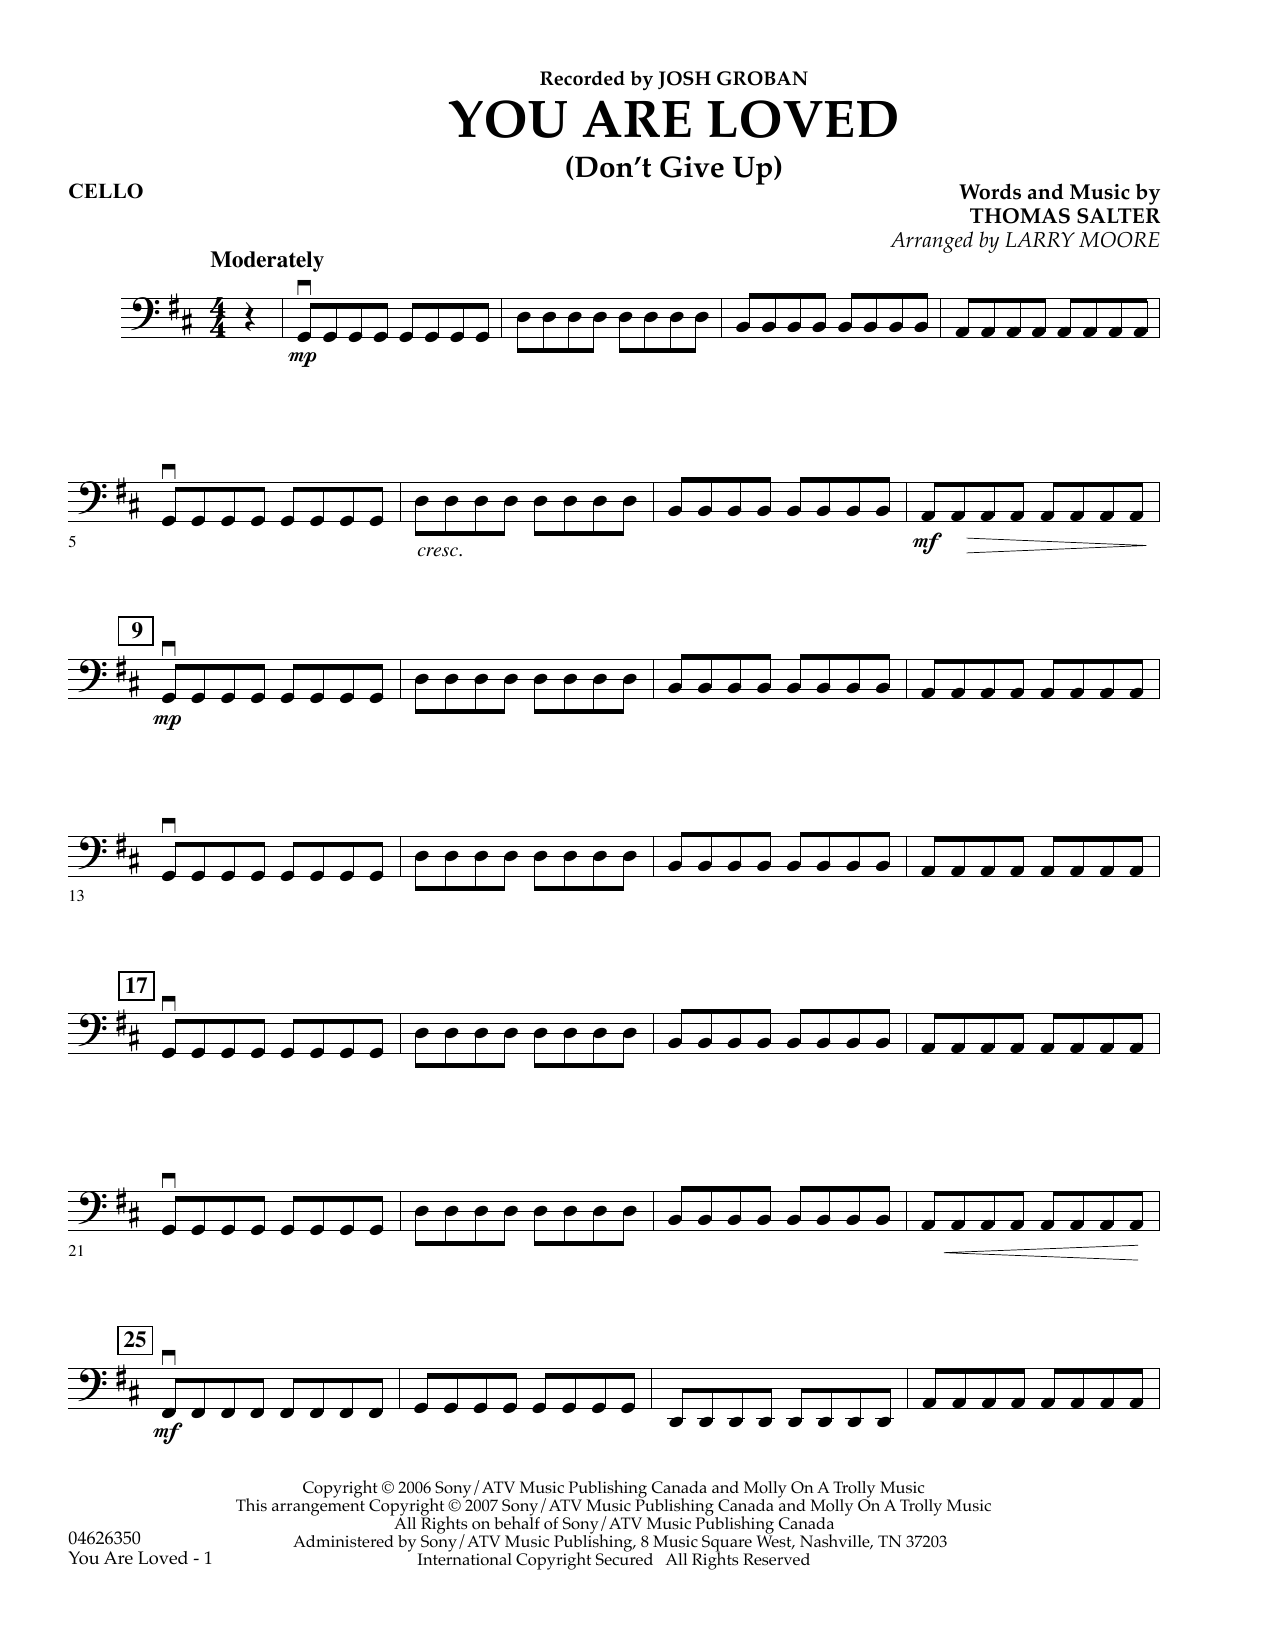 You Are Loved (Don't Give Up) - Cello sheet music